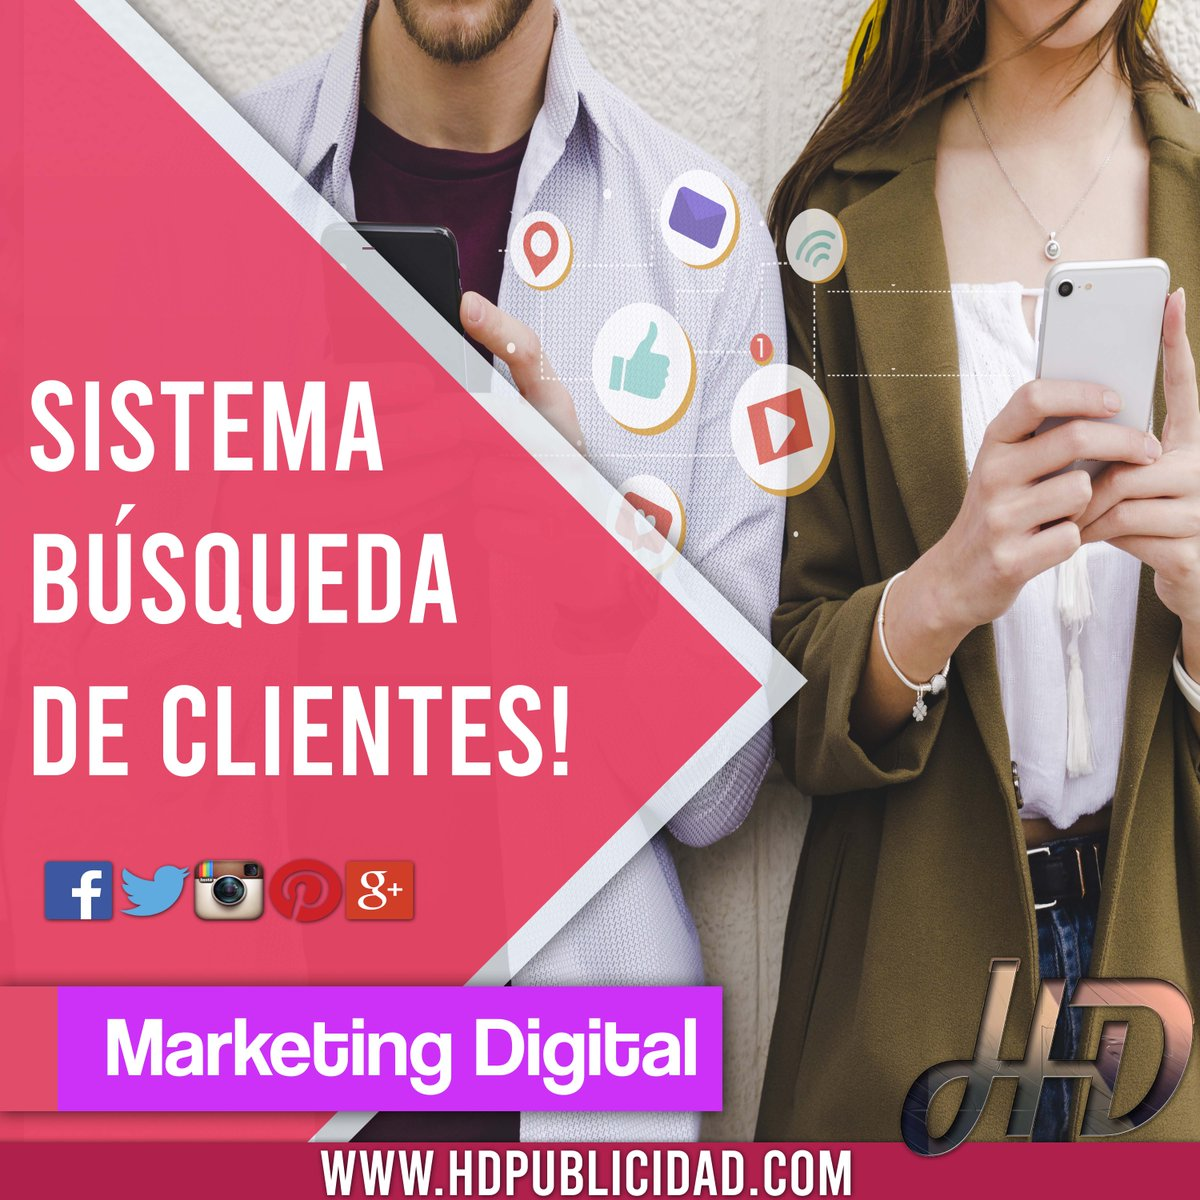 En #Hd te ayudamos a conseguir #Nuevos #Clientes🙌 📊💪 ~Aumentamos tus #Ventas📣~ >Marketing Digital >Aumentamos tus ventas >Publicidad en Redes sociales Consultanos HD Agencia Digital https://t.co/KHsJe35Vor ▶️📱Whatsapp: 0341-6663229 info@hdpublicidad.com https://t.co/GjTkfROg6F